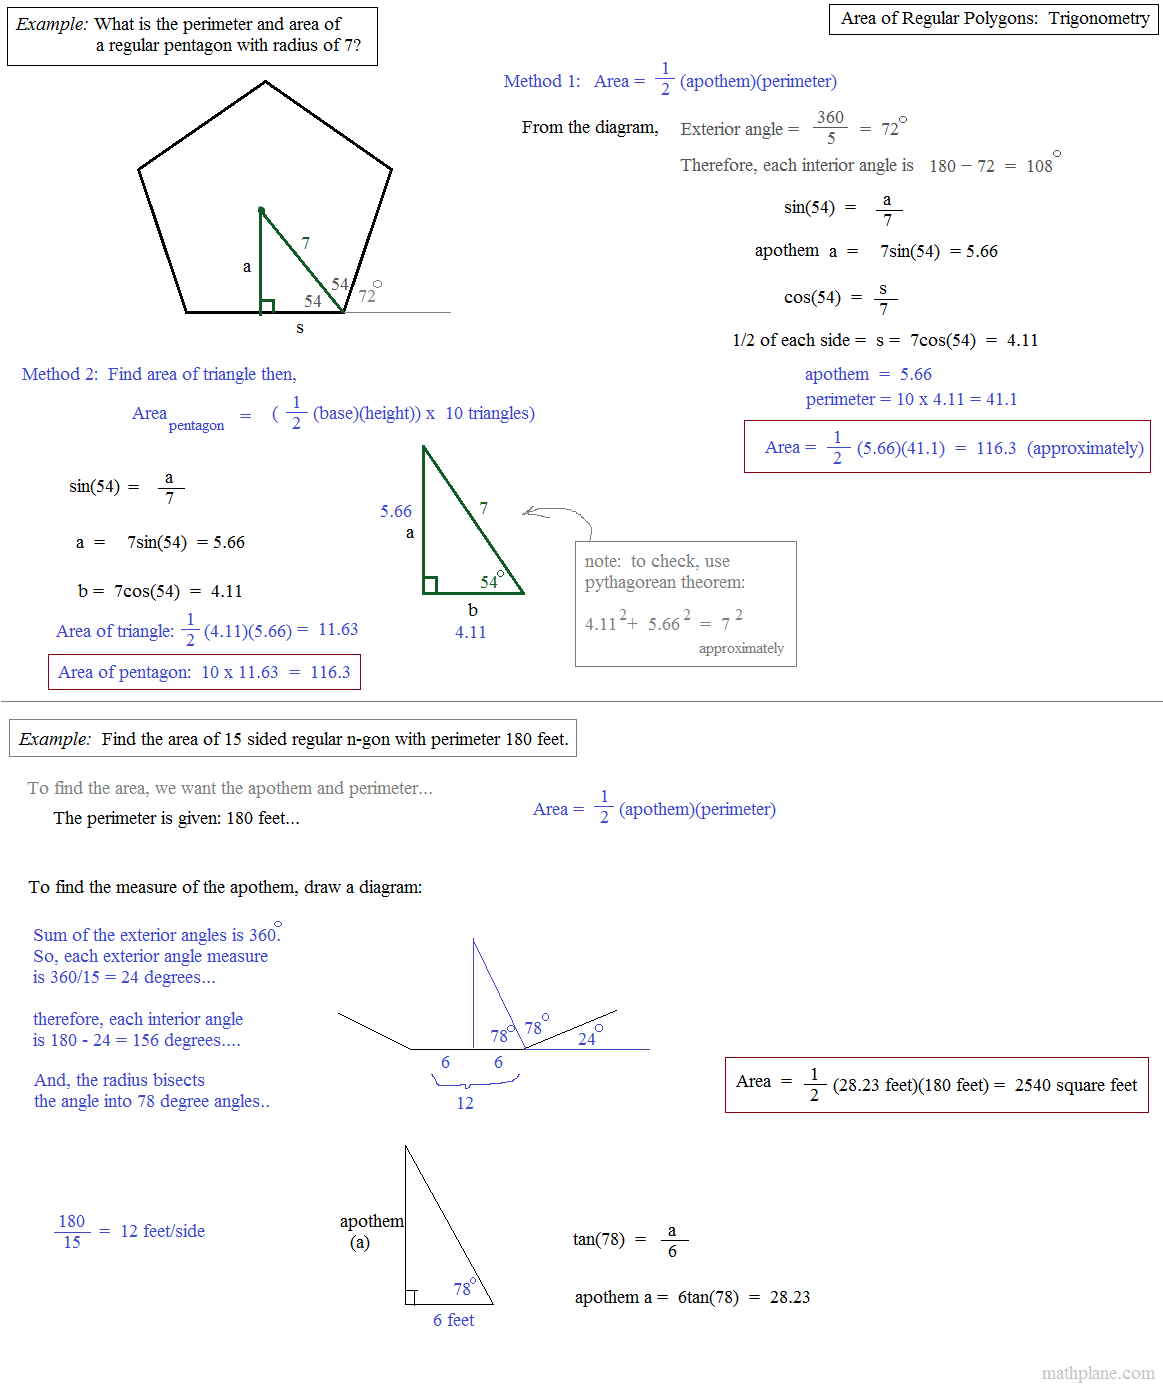 worksheet Area And Perimeter Of Polygons Worksheet math plane area and perimeter of polygons 2 regular trigonometry